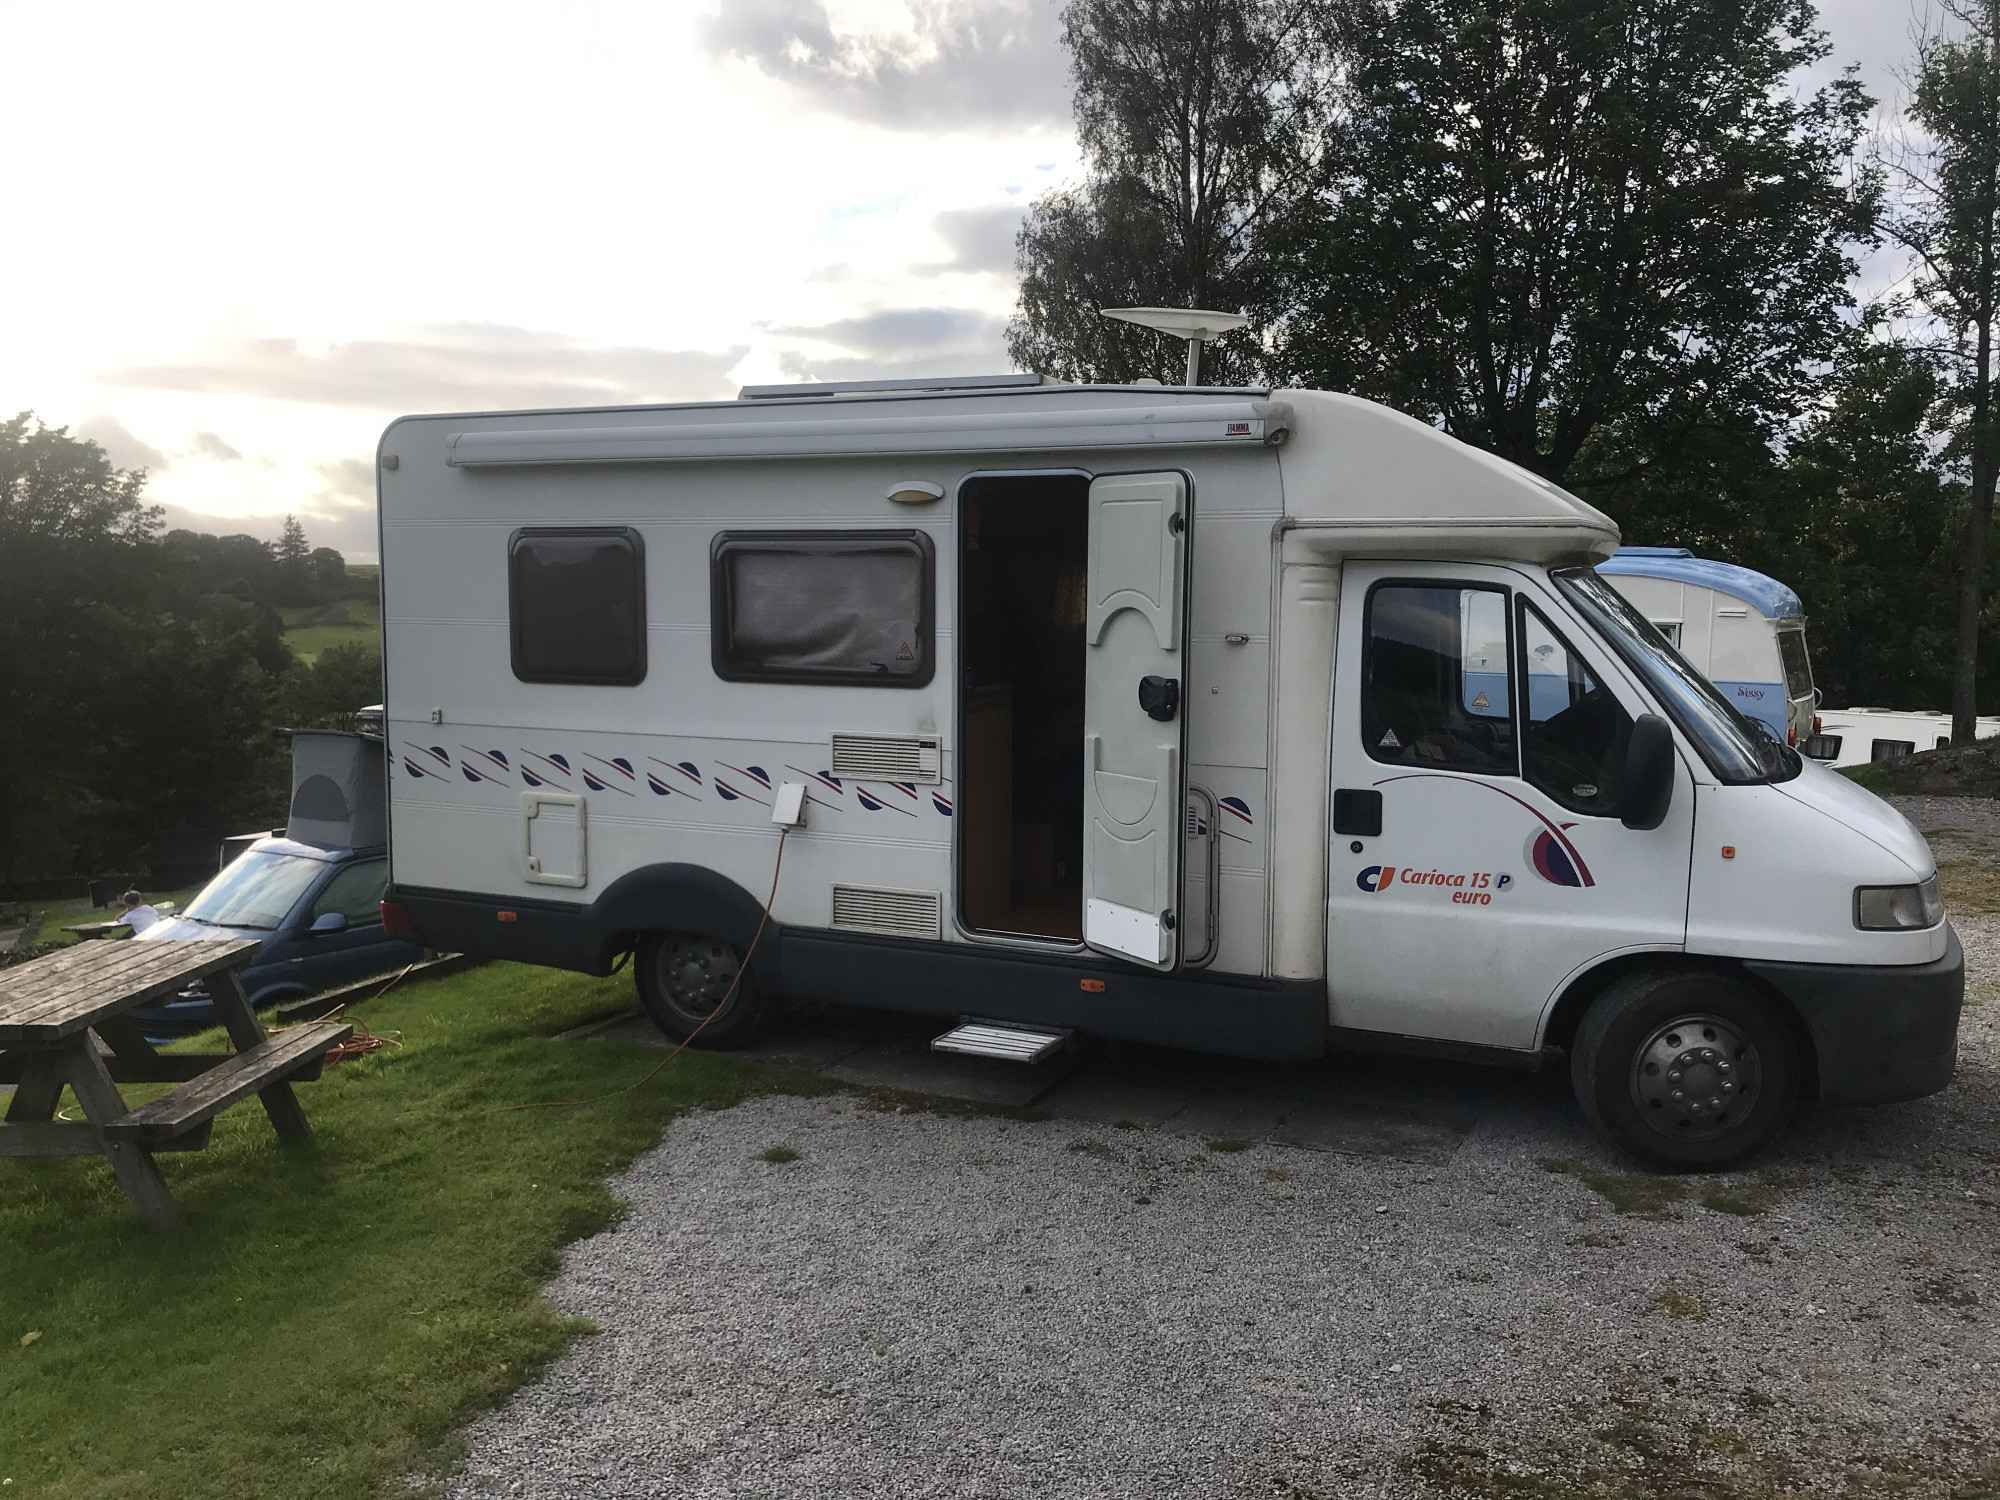 A Ci Motorhome called Dozza and for hire